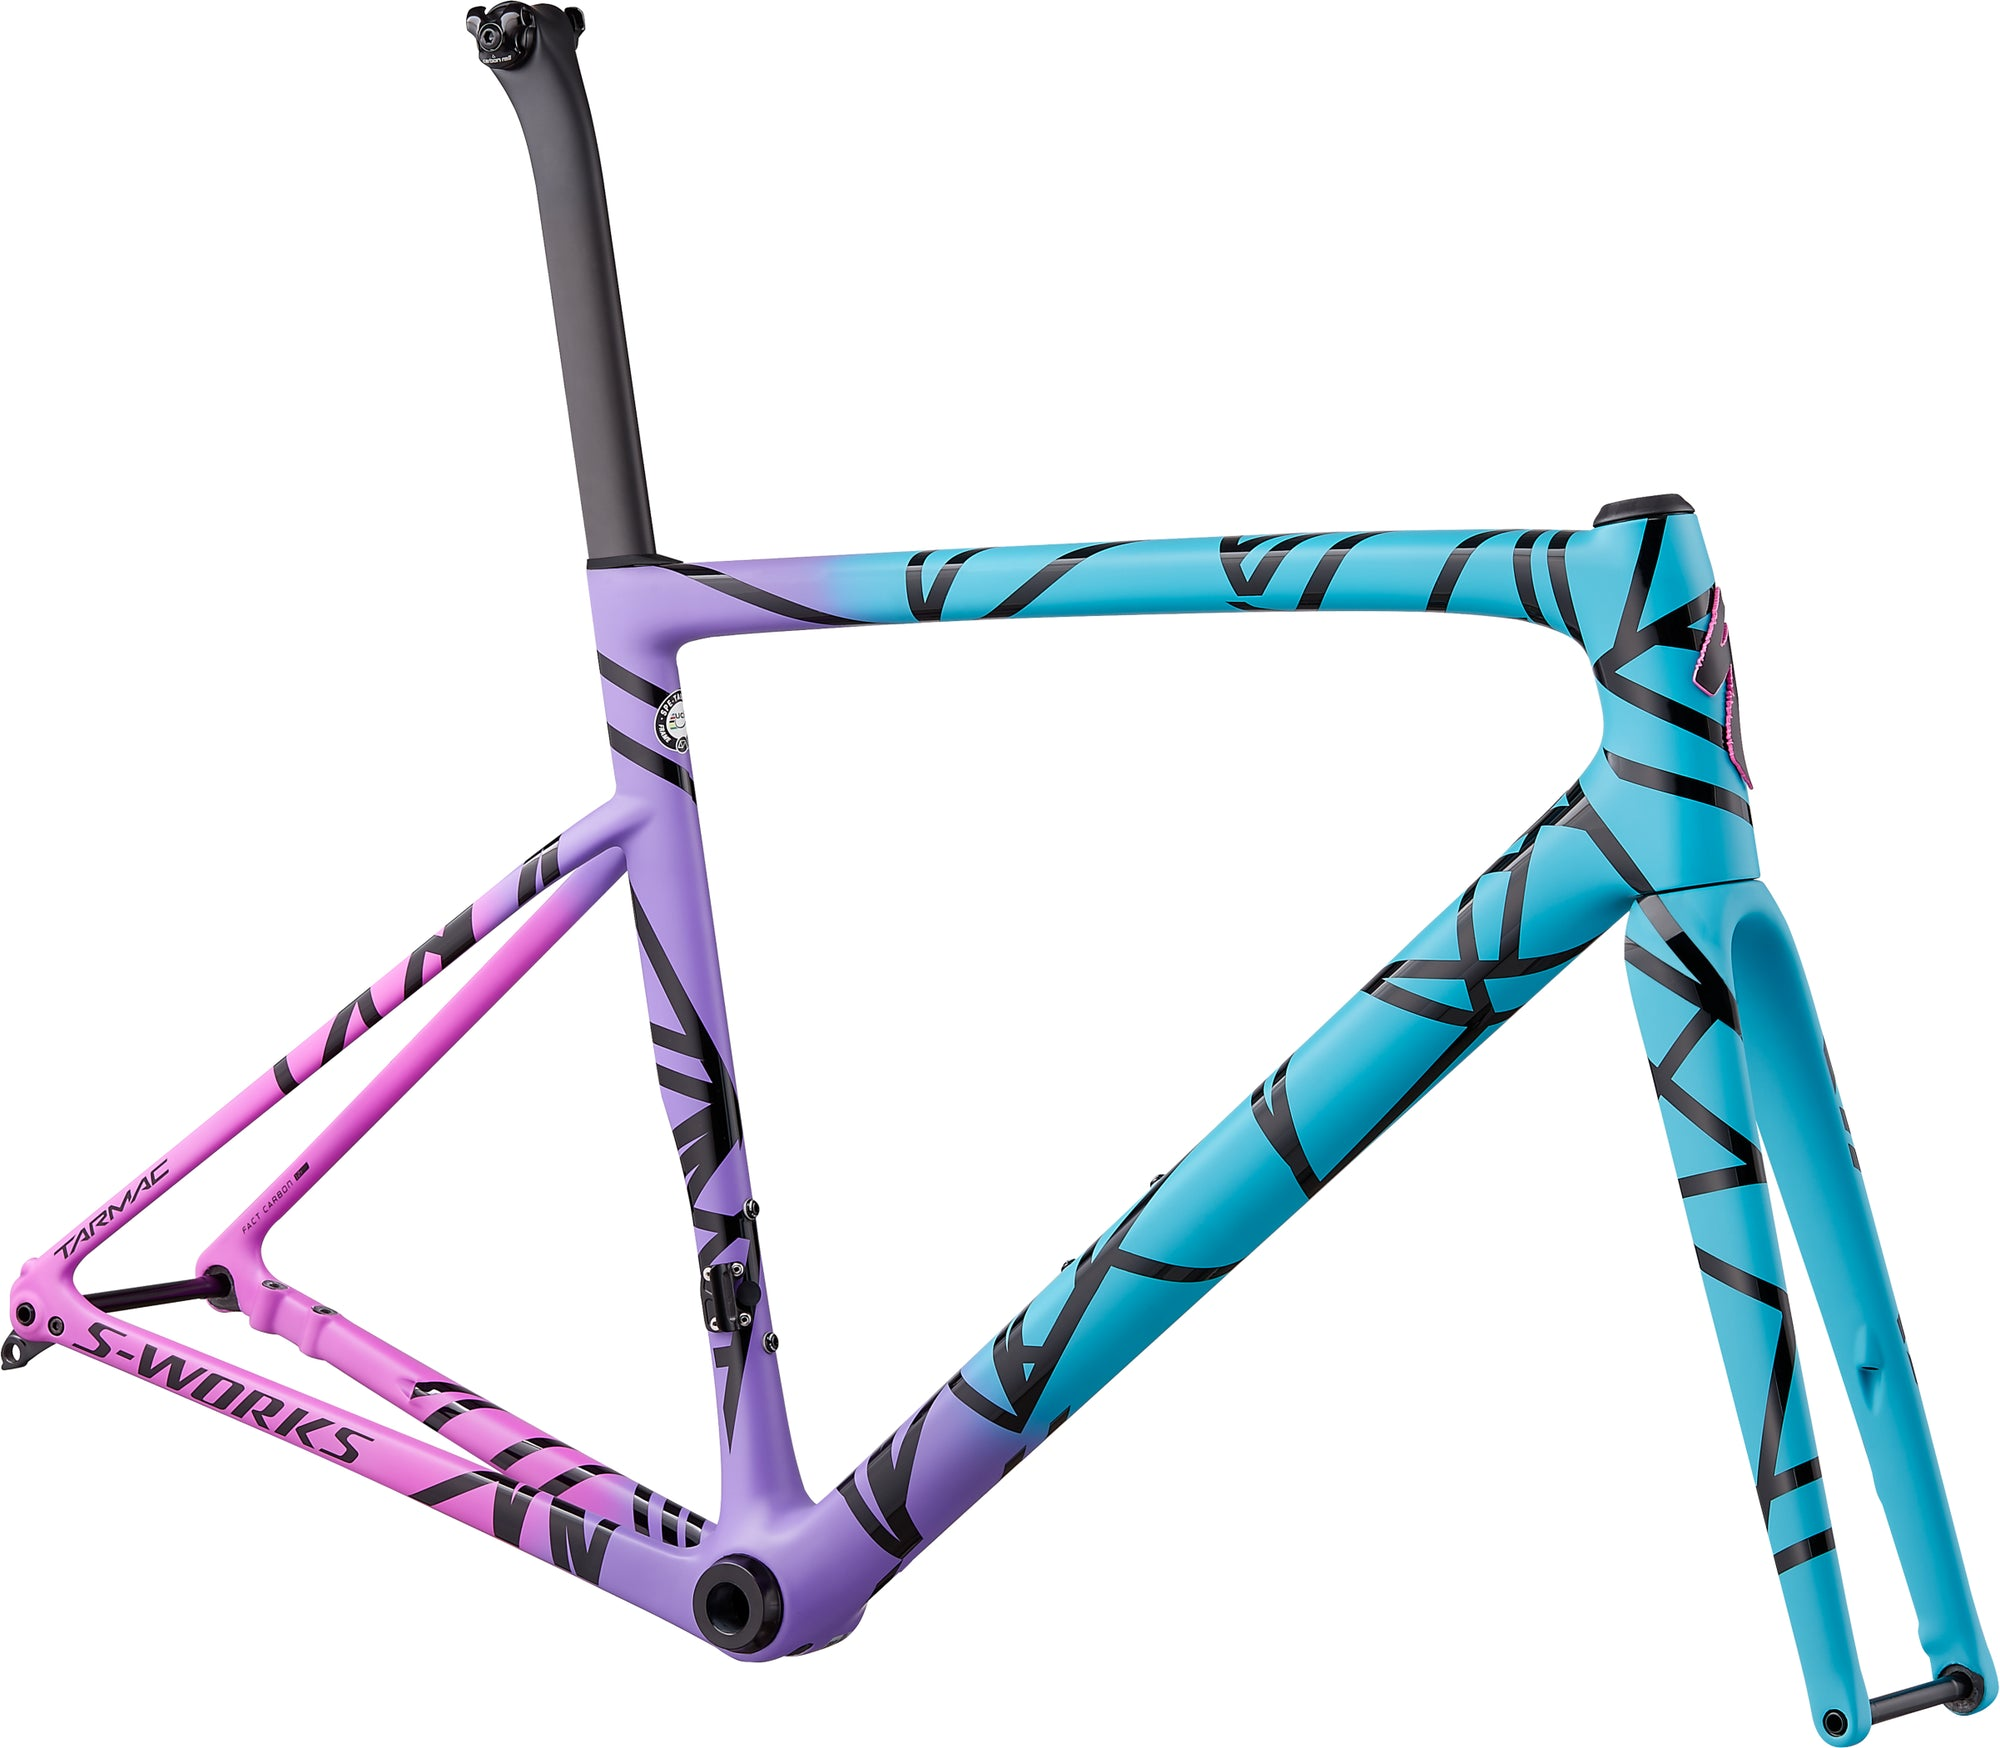 S-Works Tarmac Disc Frameset - Mixtape LTD